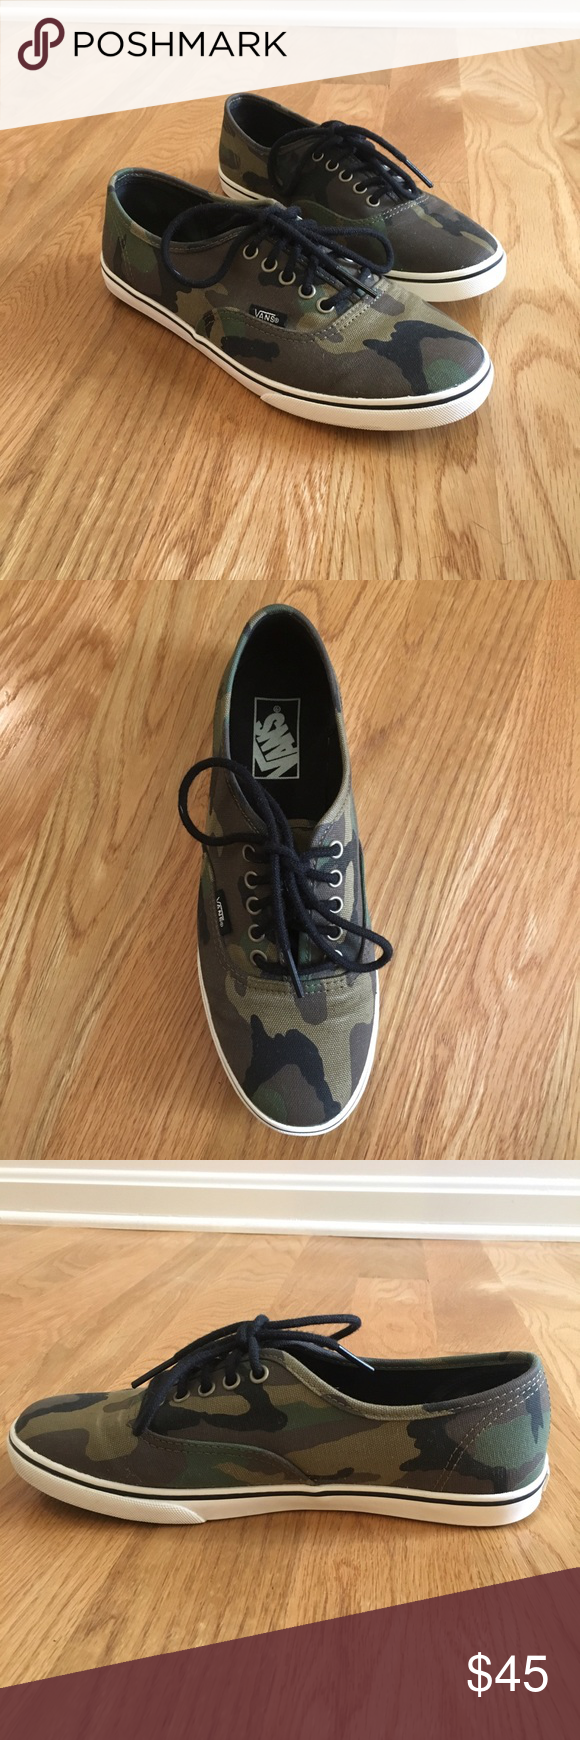 e73783e31d44 NWOT Limited edition camouflage vans Never been worn so the shoes are in  great condition. They are super cute and I have not seen many pairs of these  ...